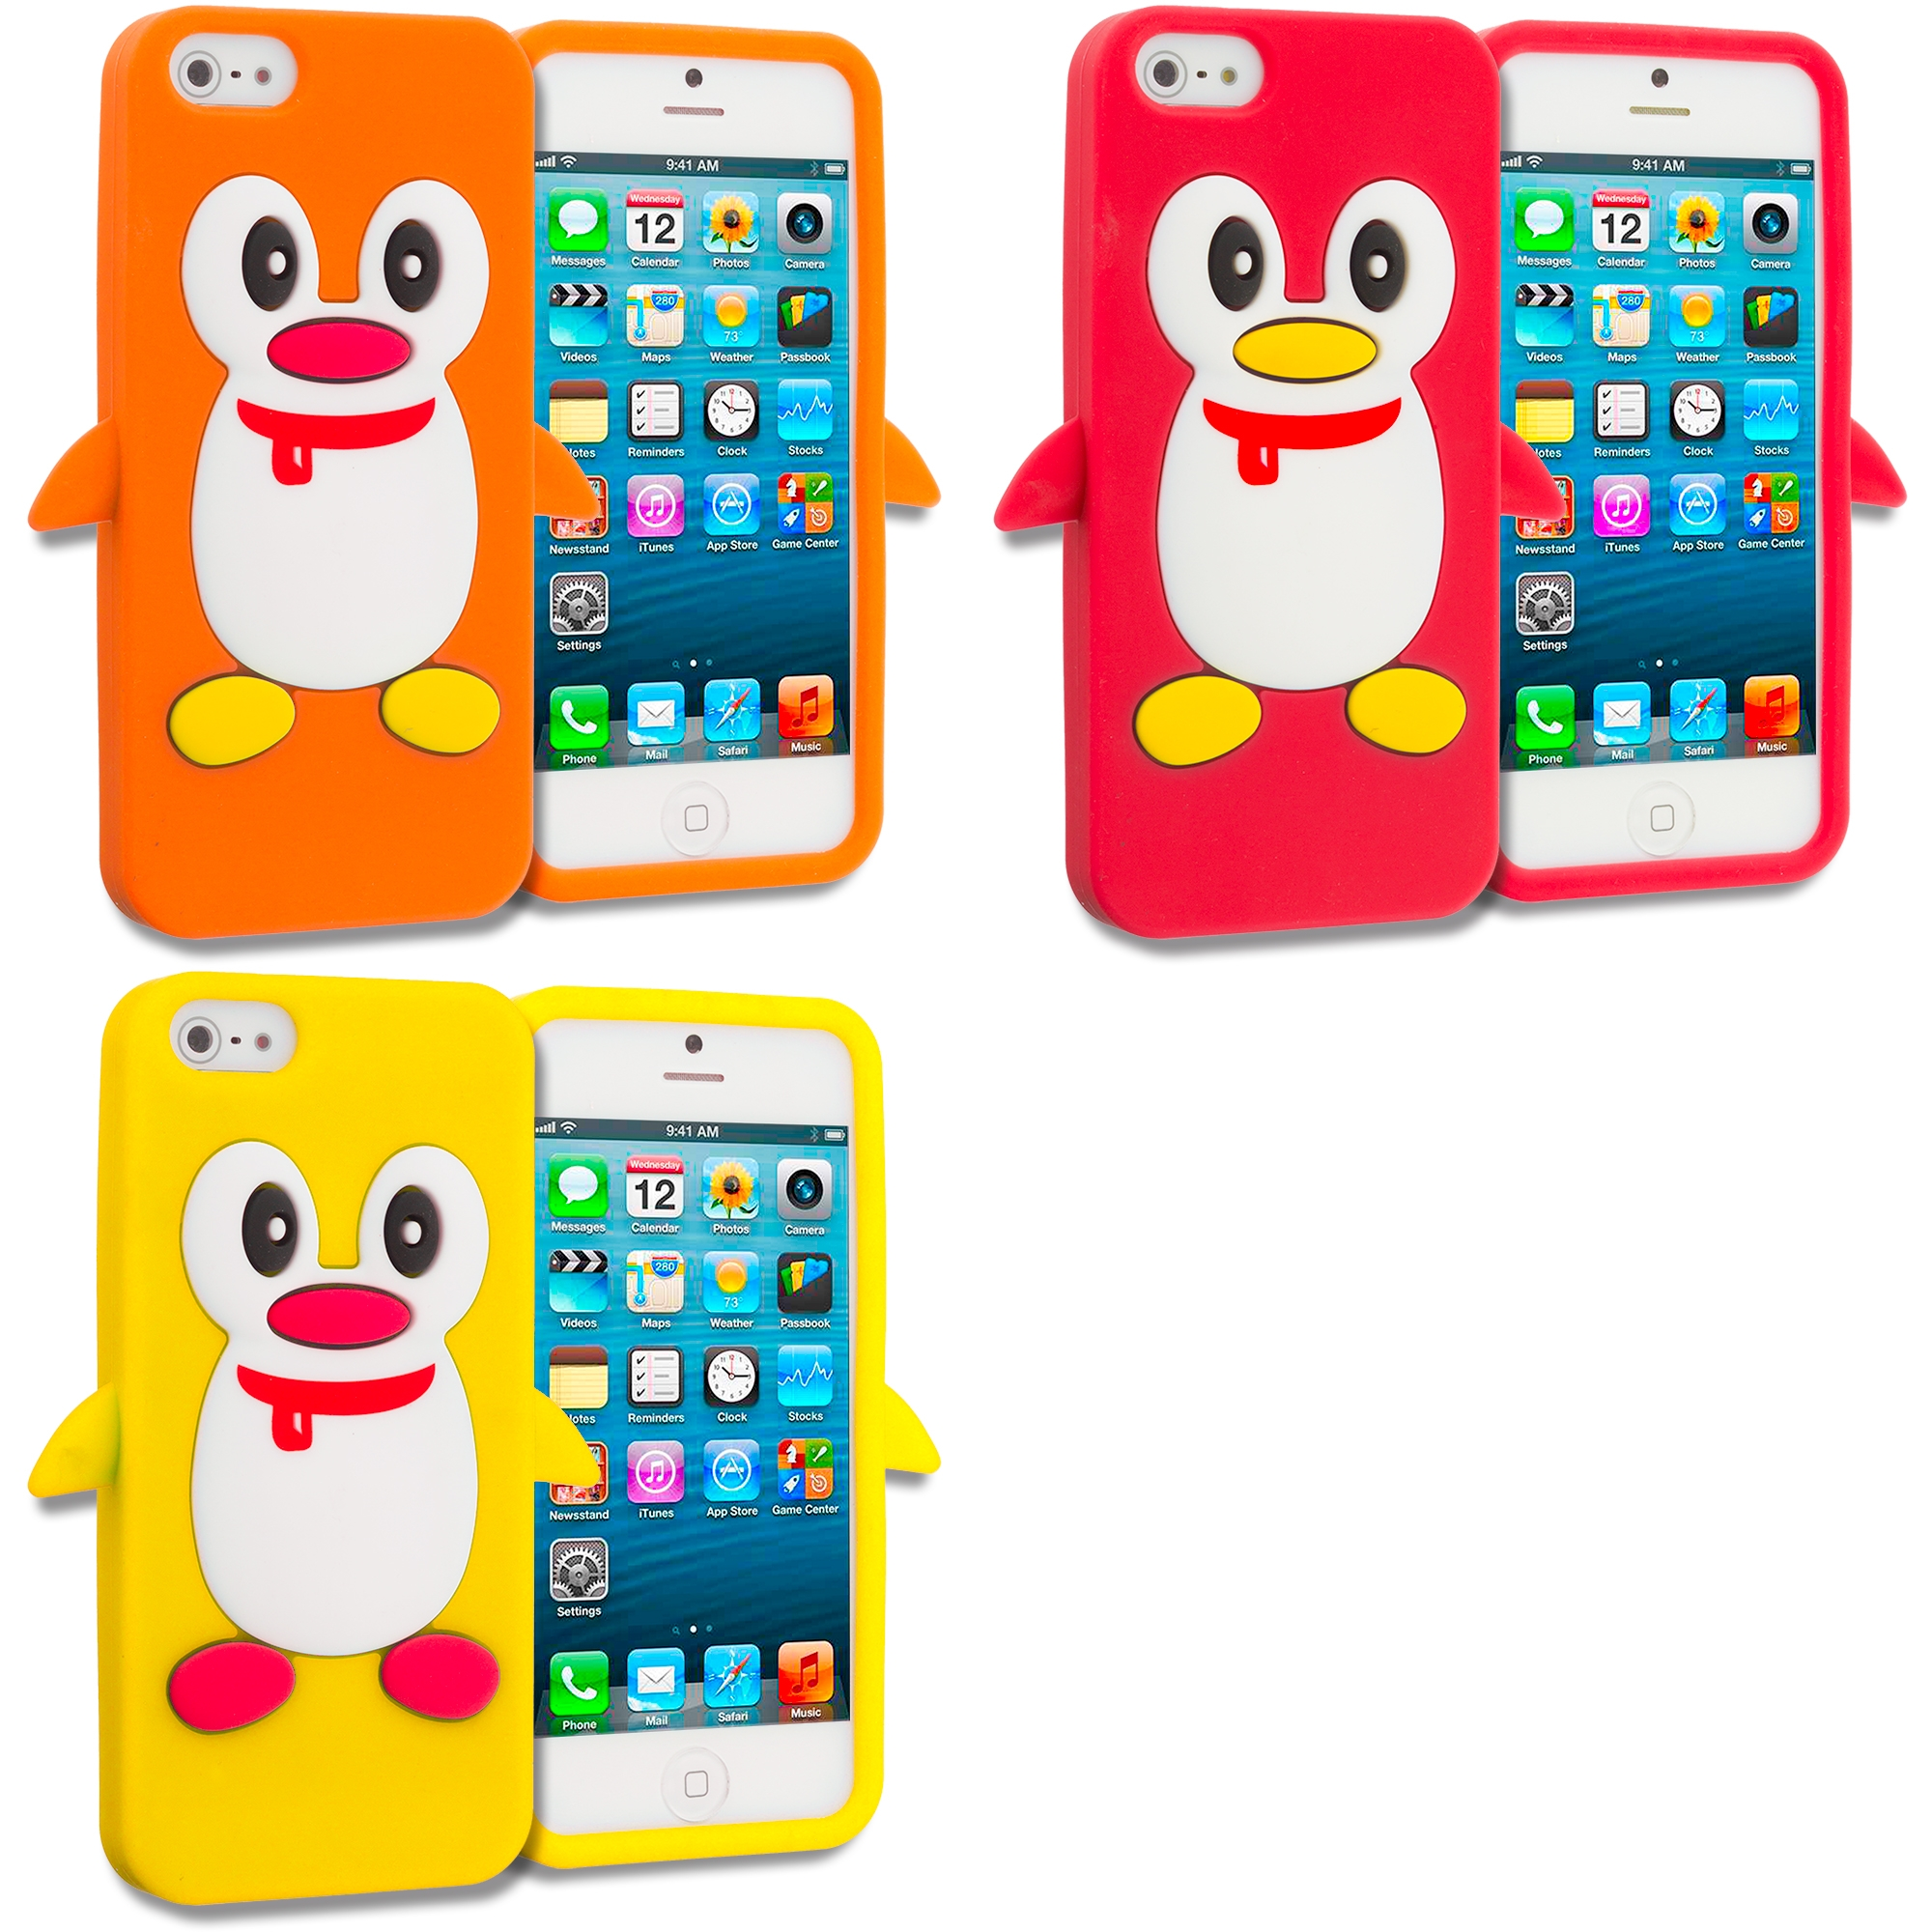 Apple iPhone 5/5S/SE Combo Pack : Orange Penguin Silicone Design Soft Skin Case Cover